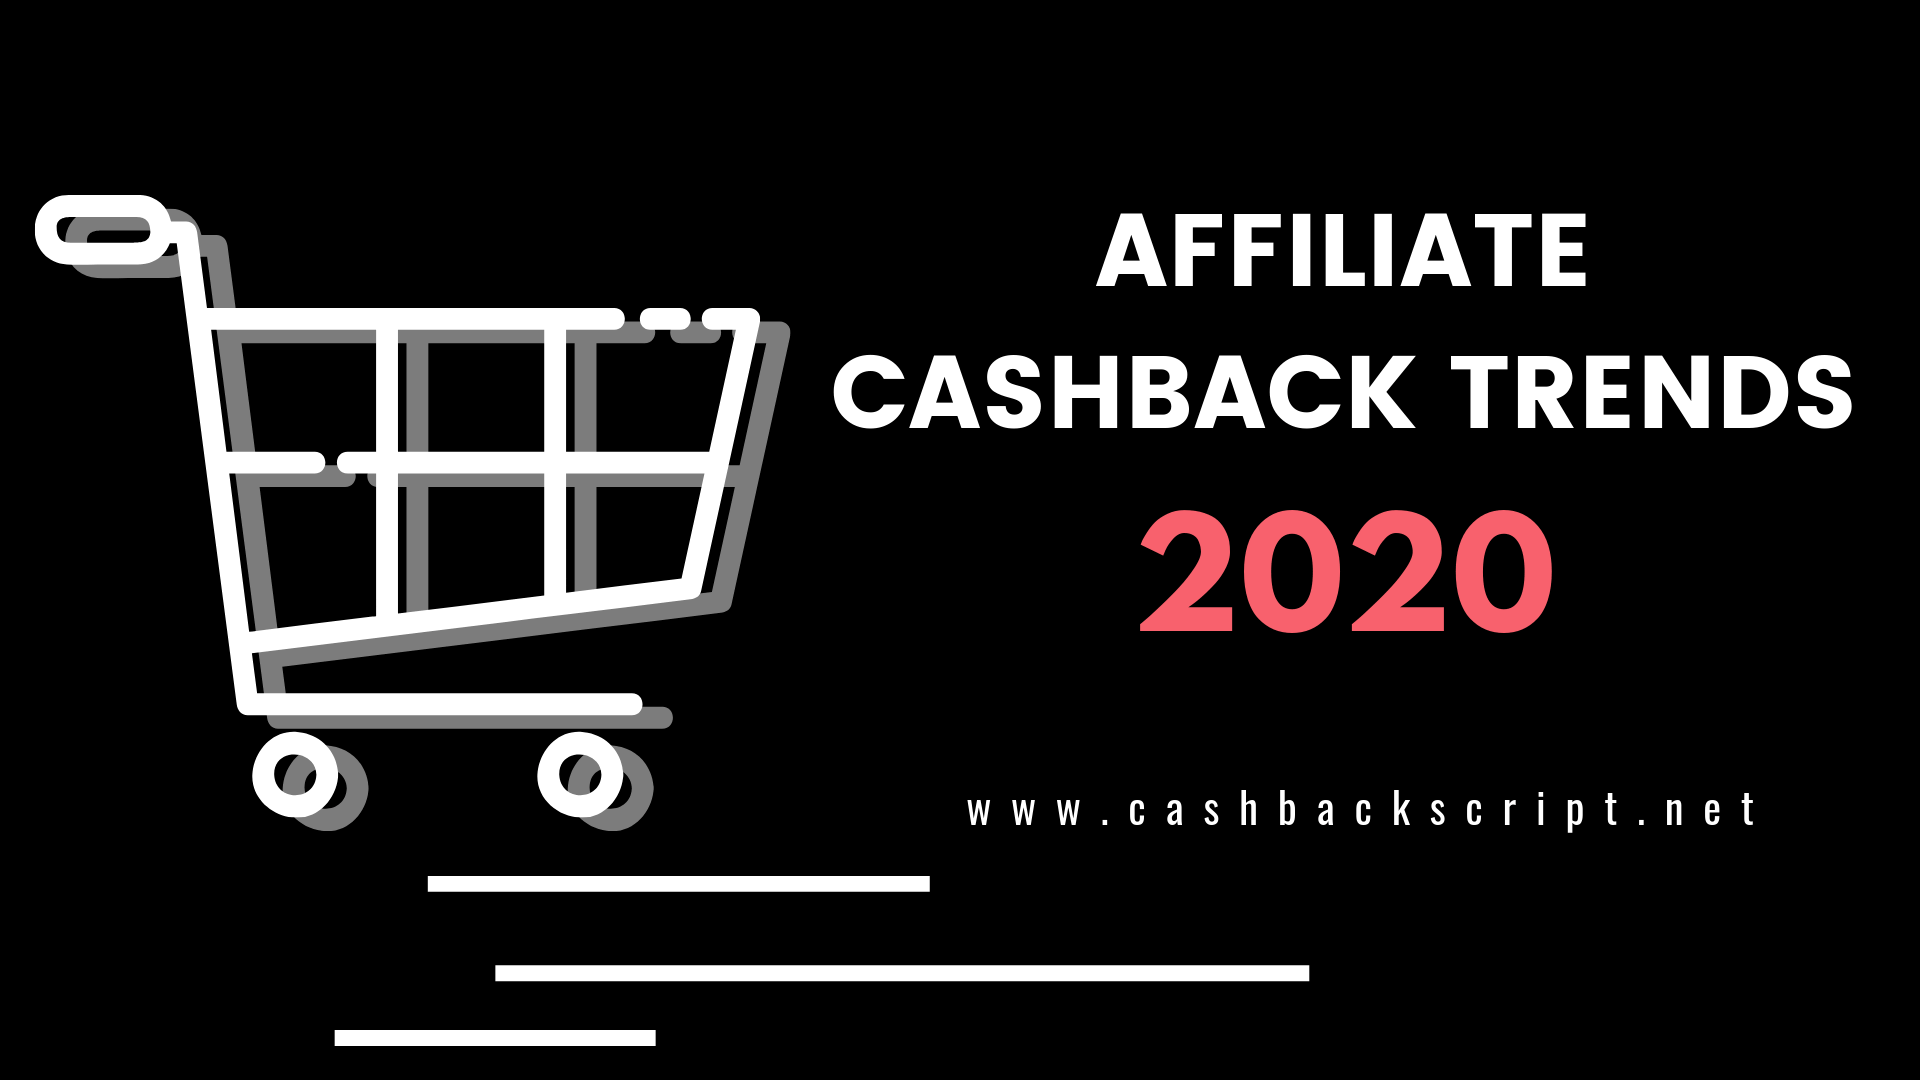 Top 5 Affiliate Cashback Business Trends to Boost your Revenue in 2020